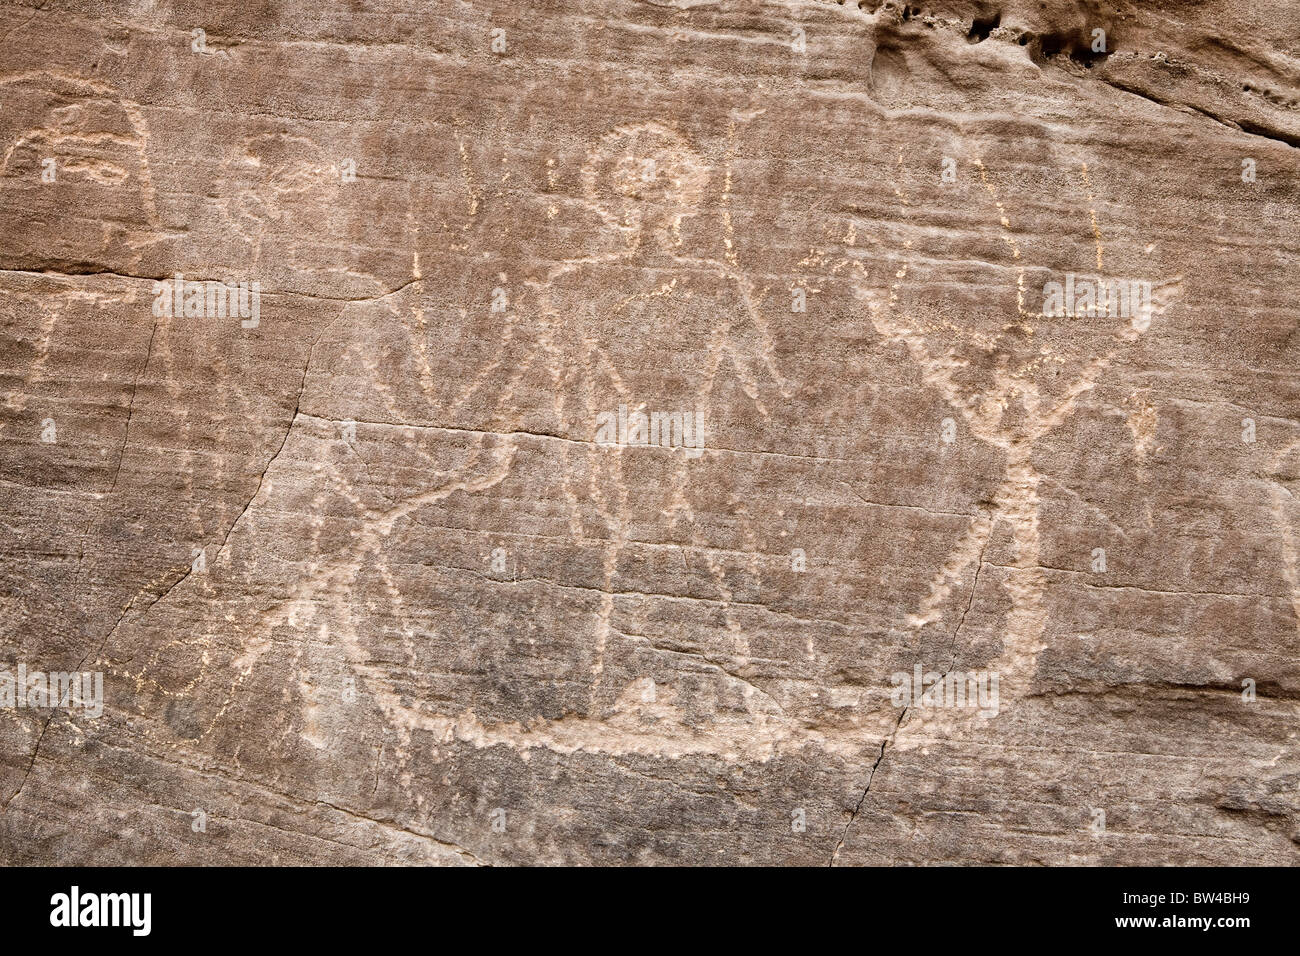 Petroglyph depicting men and a boat from dynastic period, Wadi Hammamat, Eastern Desert Egypt - Stock Image